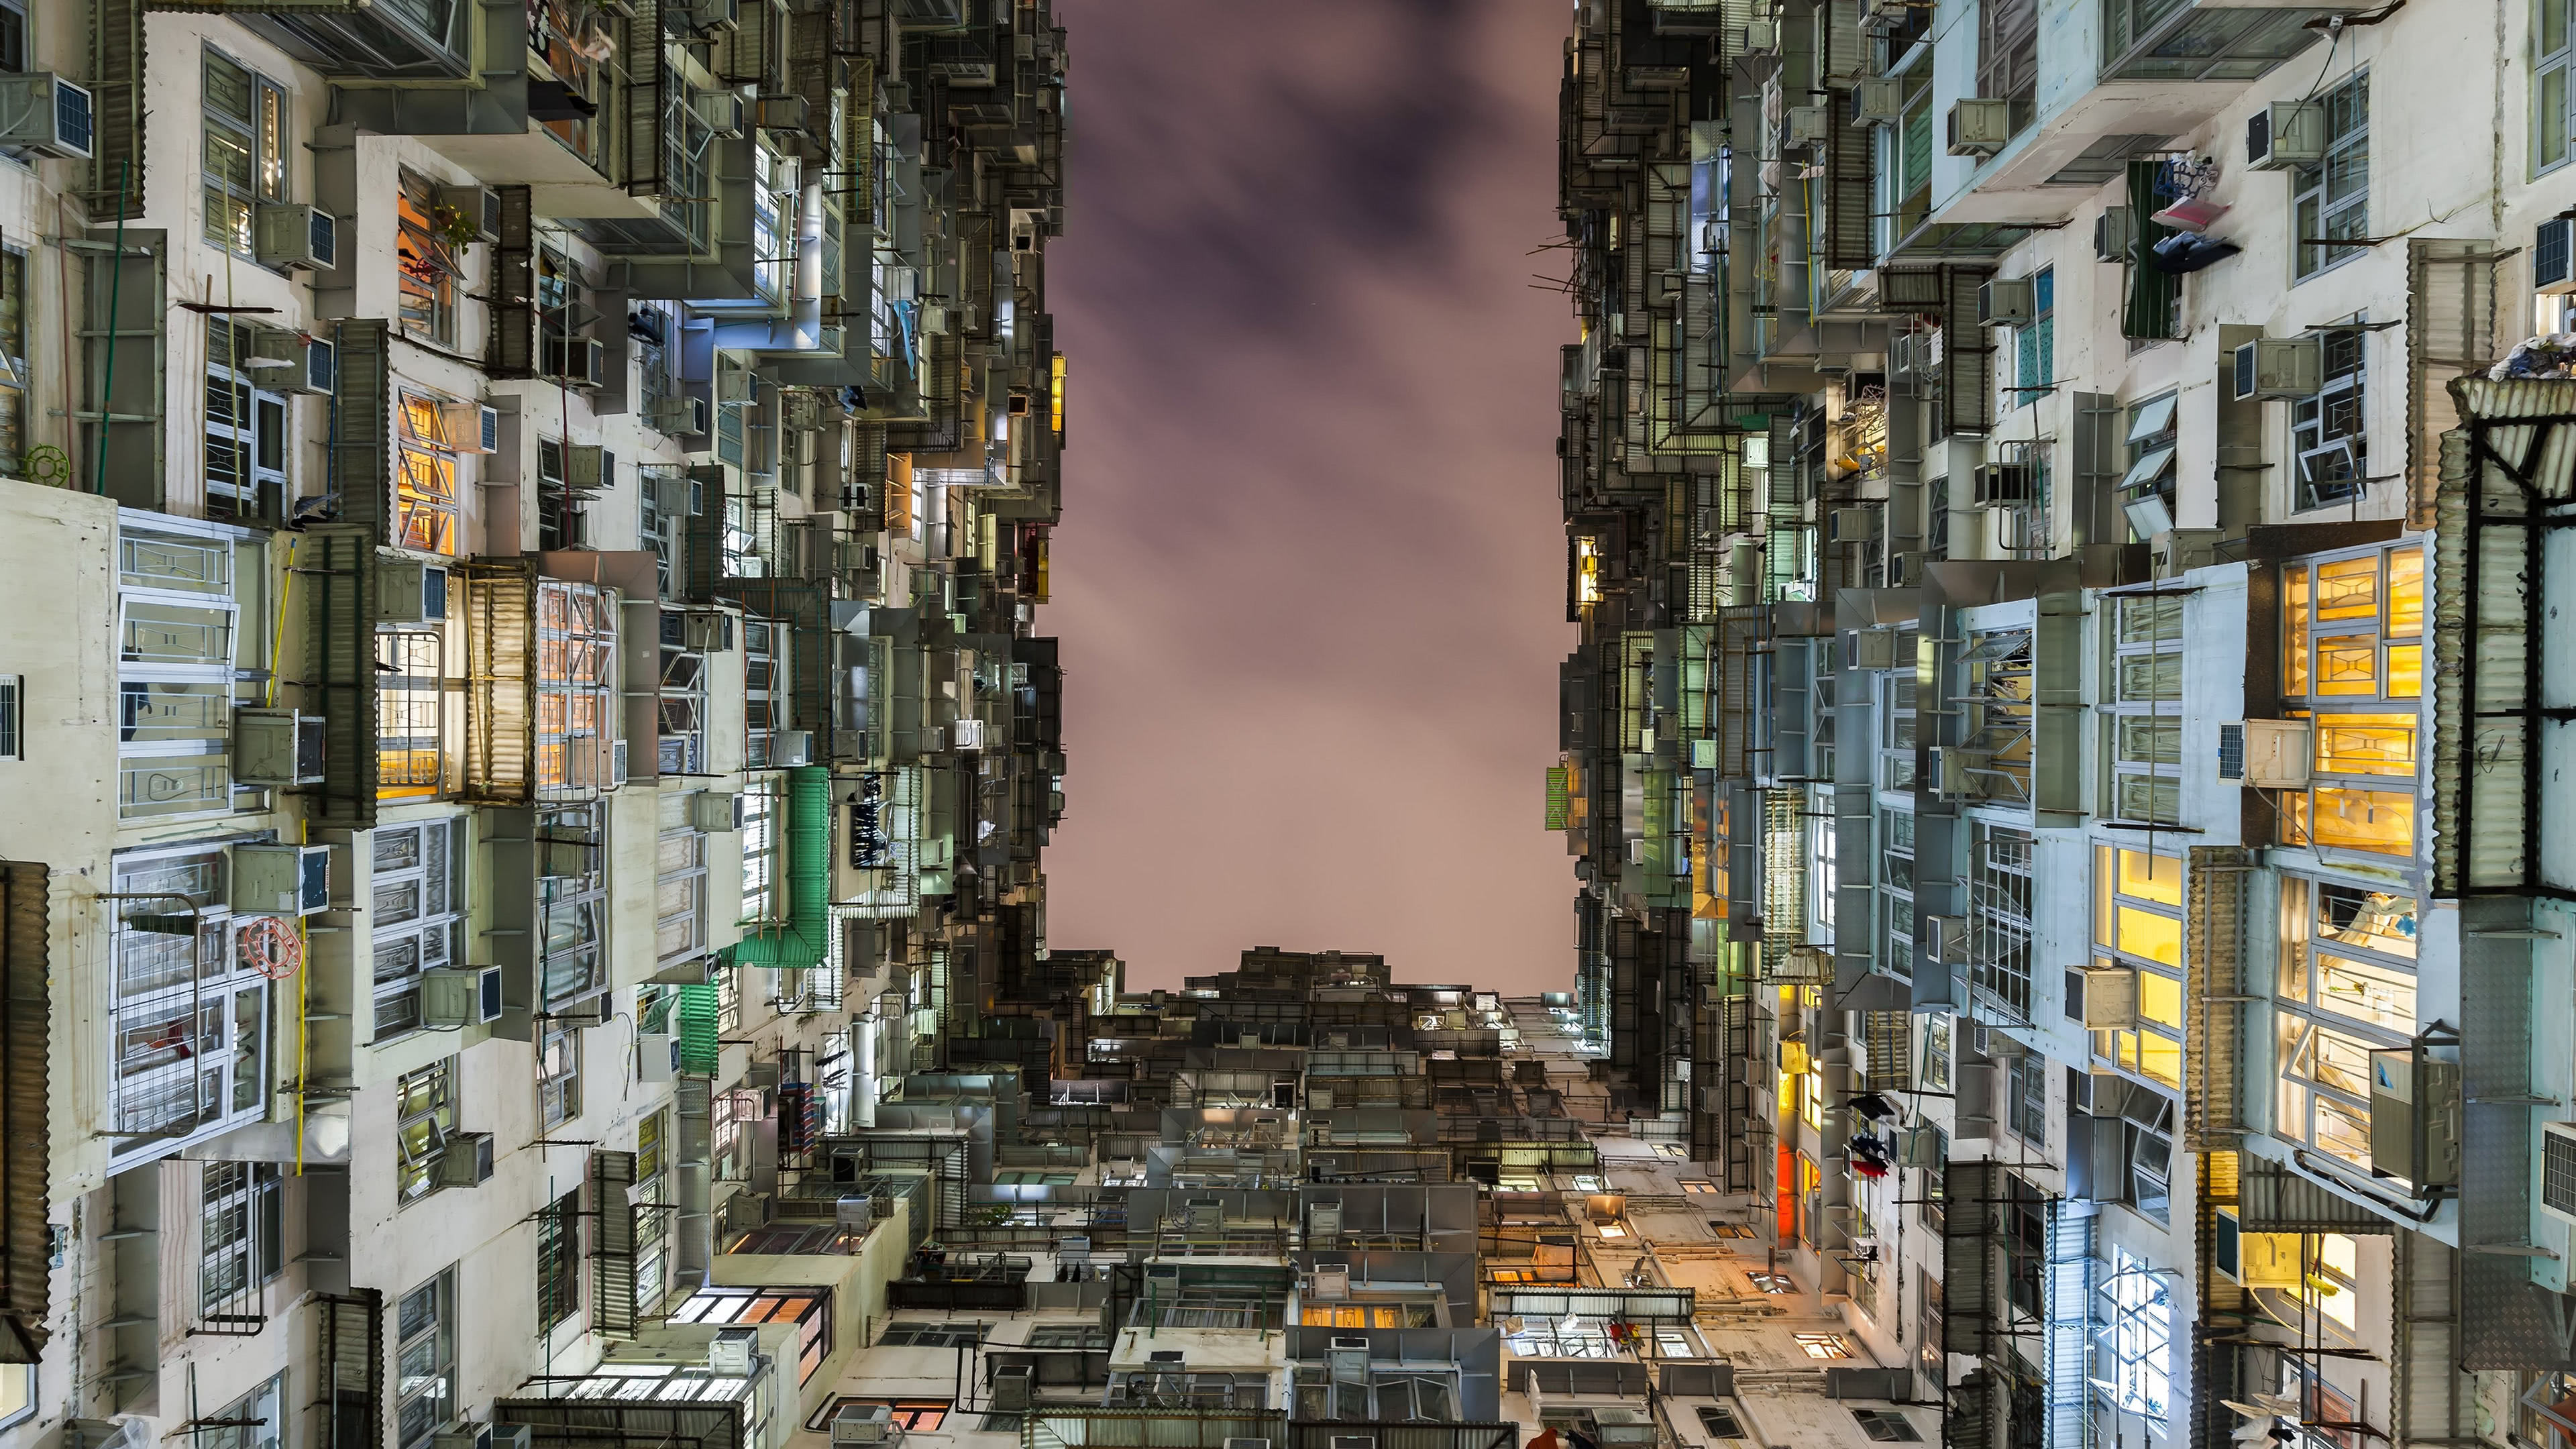 Living In A Box Condos Hong Kong China Uhd 4k Wallpaper Pixelz